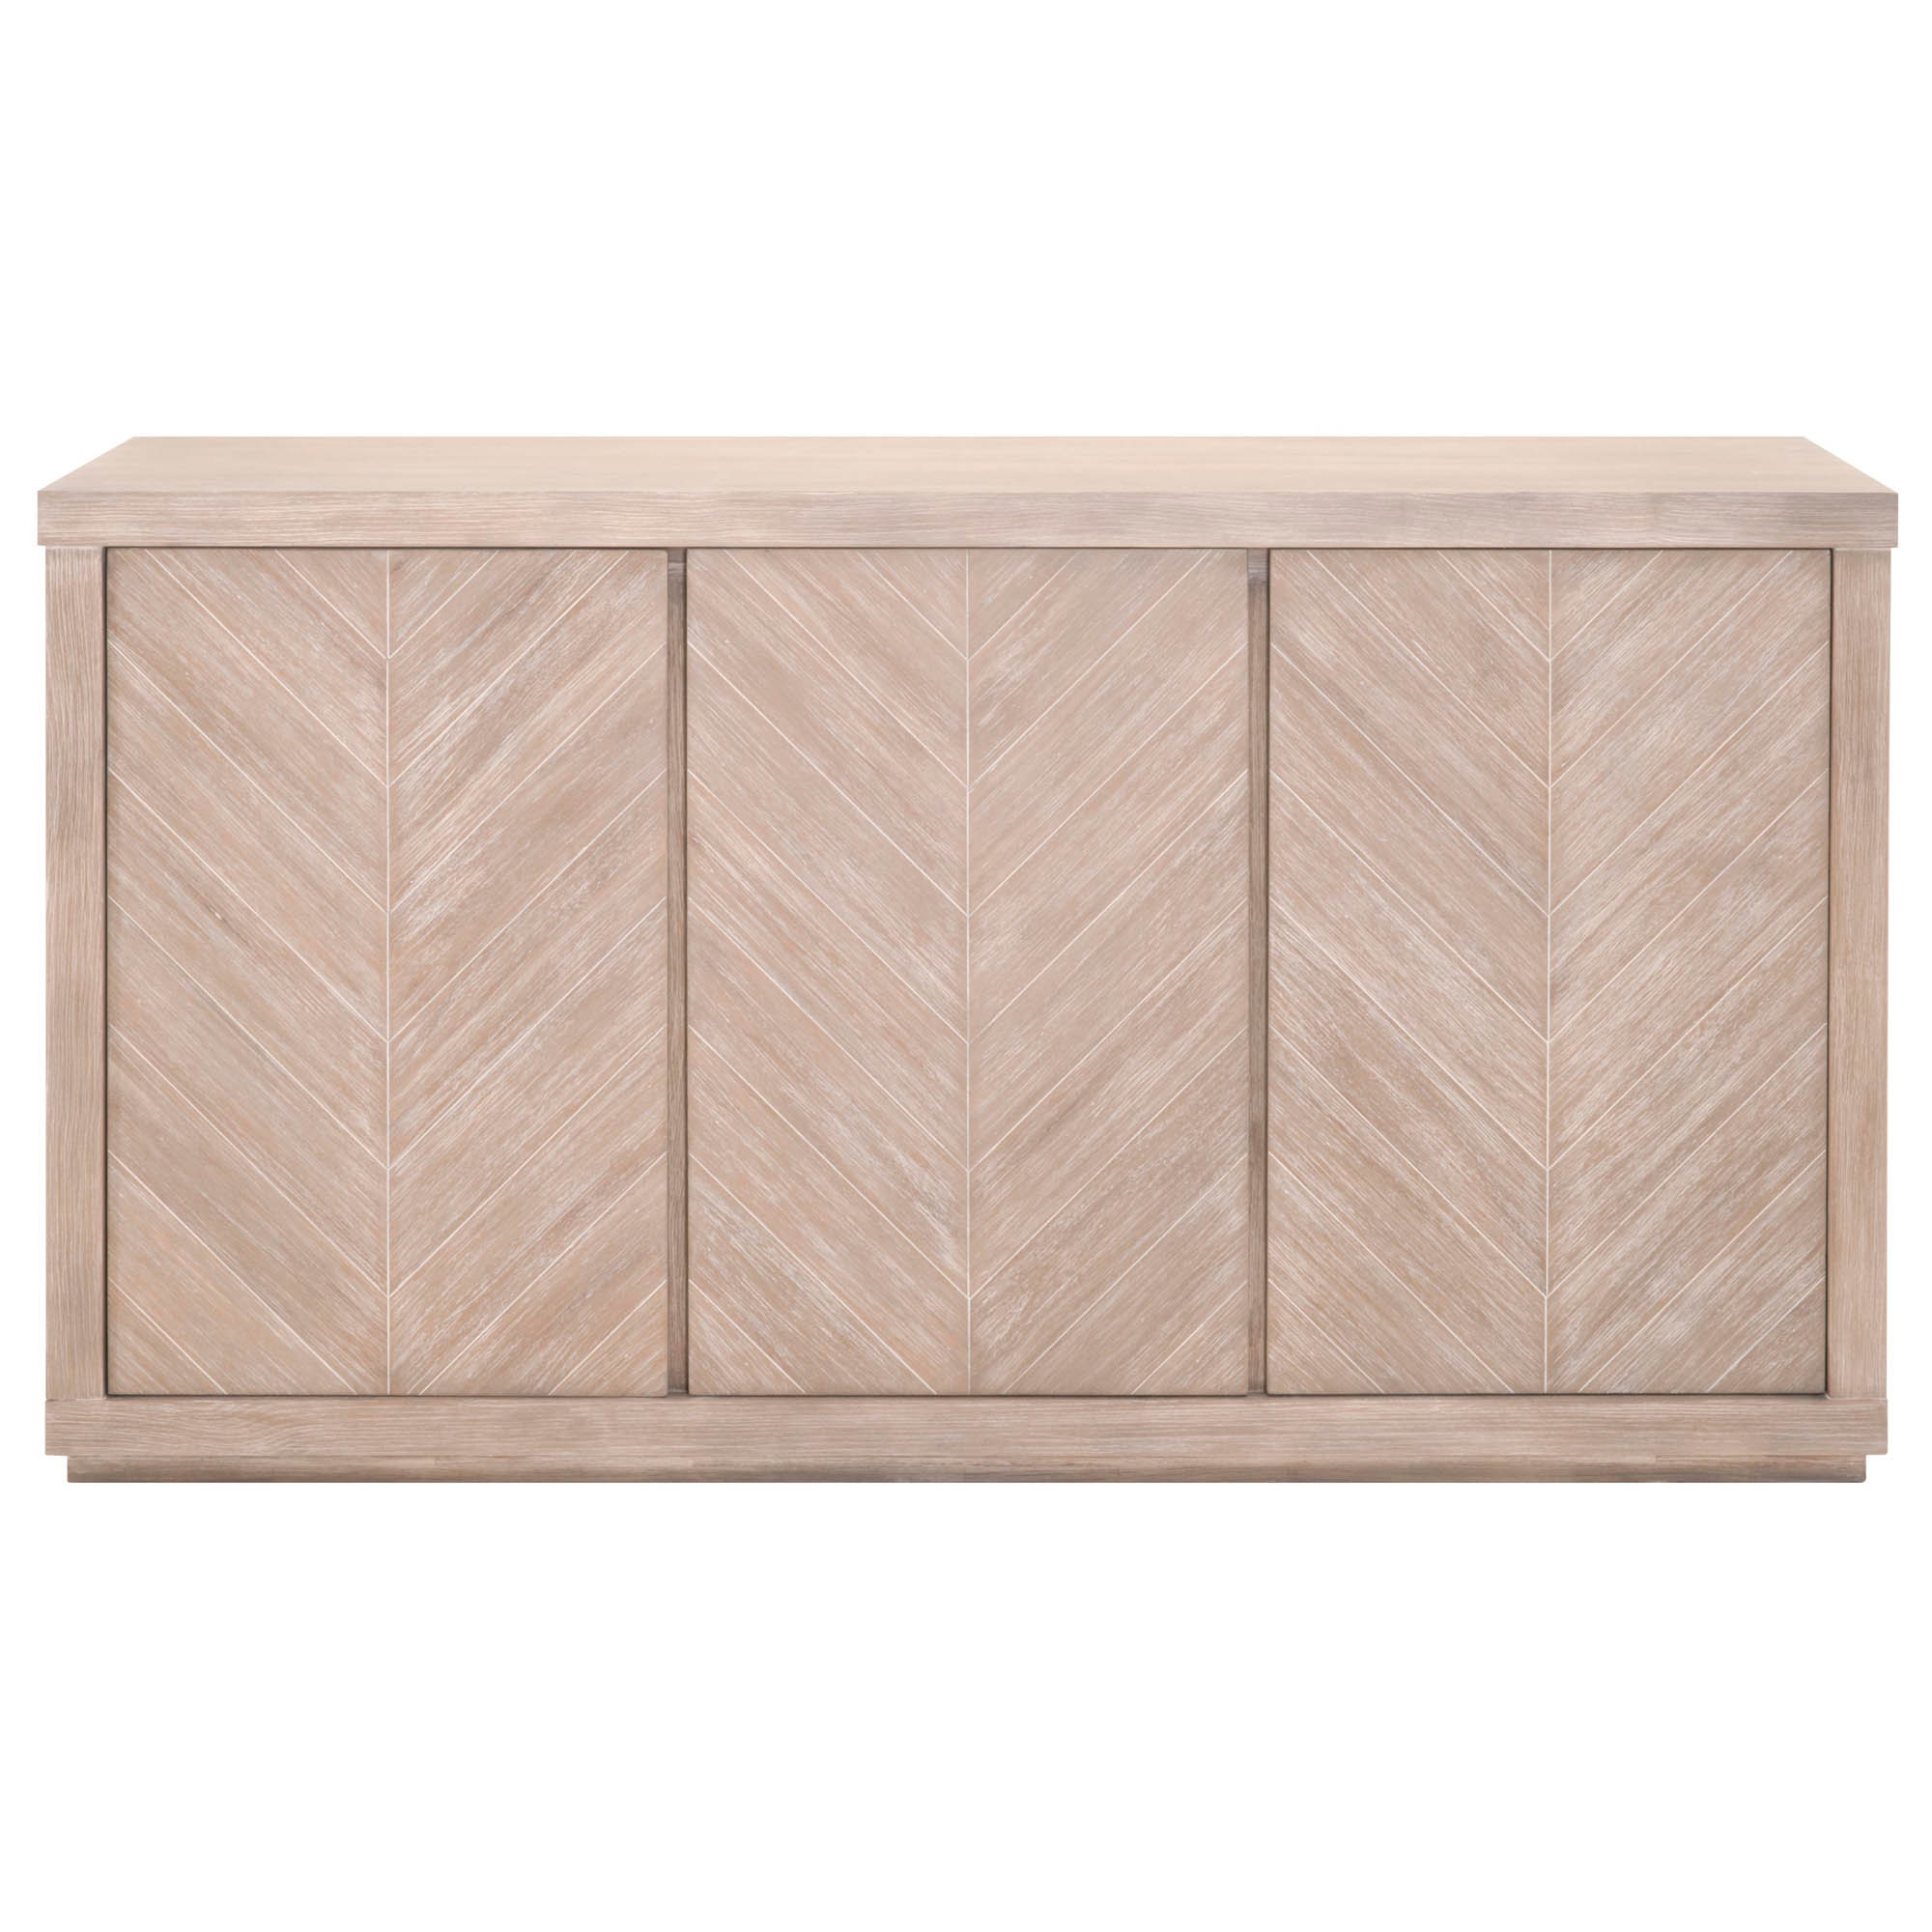 Adler Sideboard - Natural Gray - 1 (1).jpg